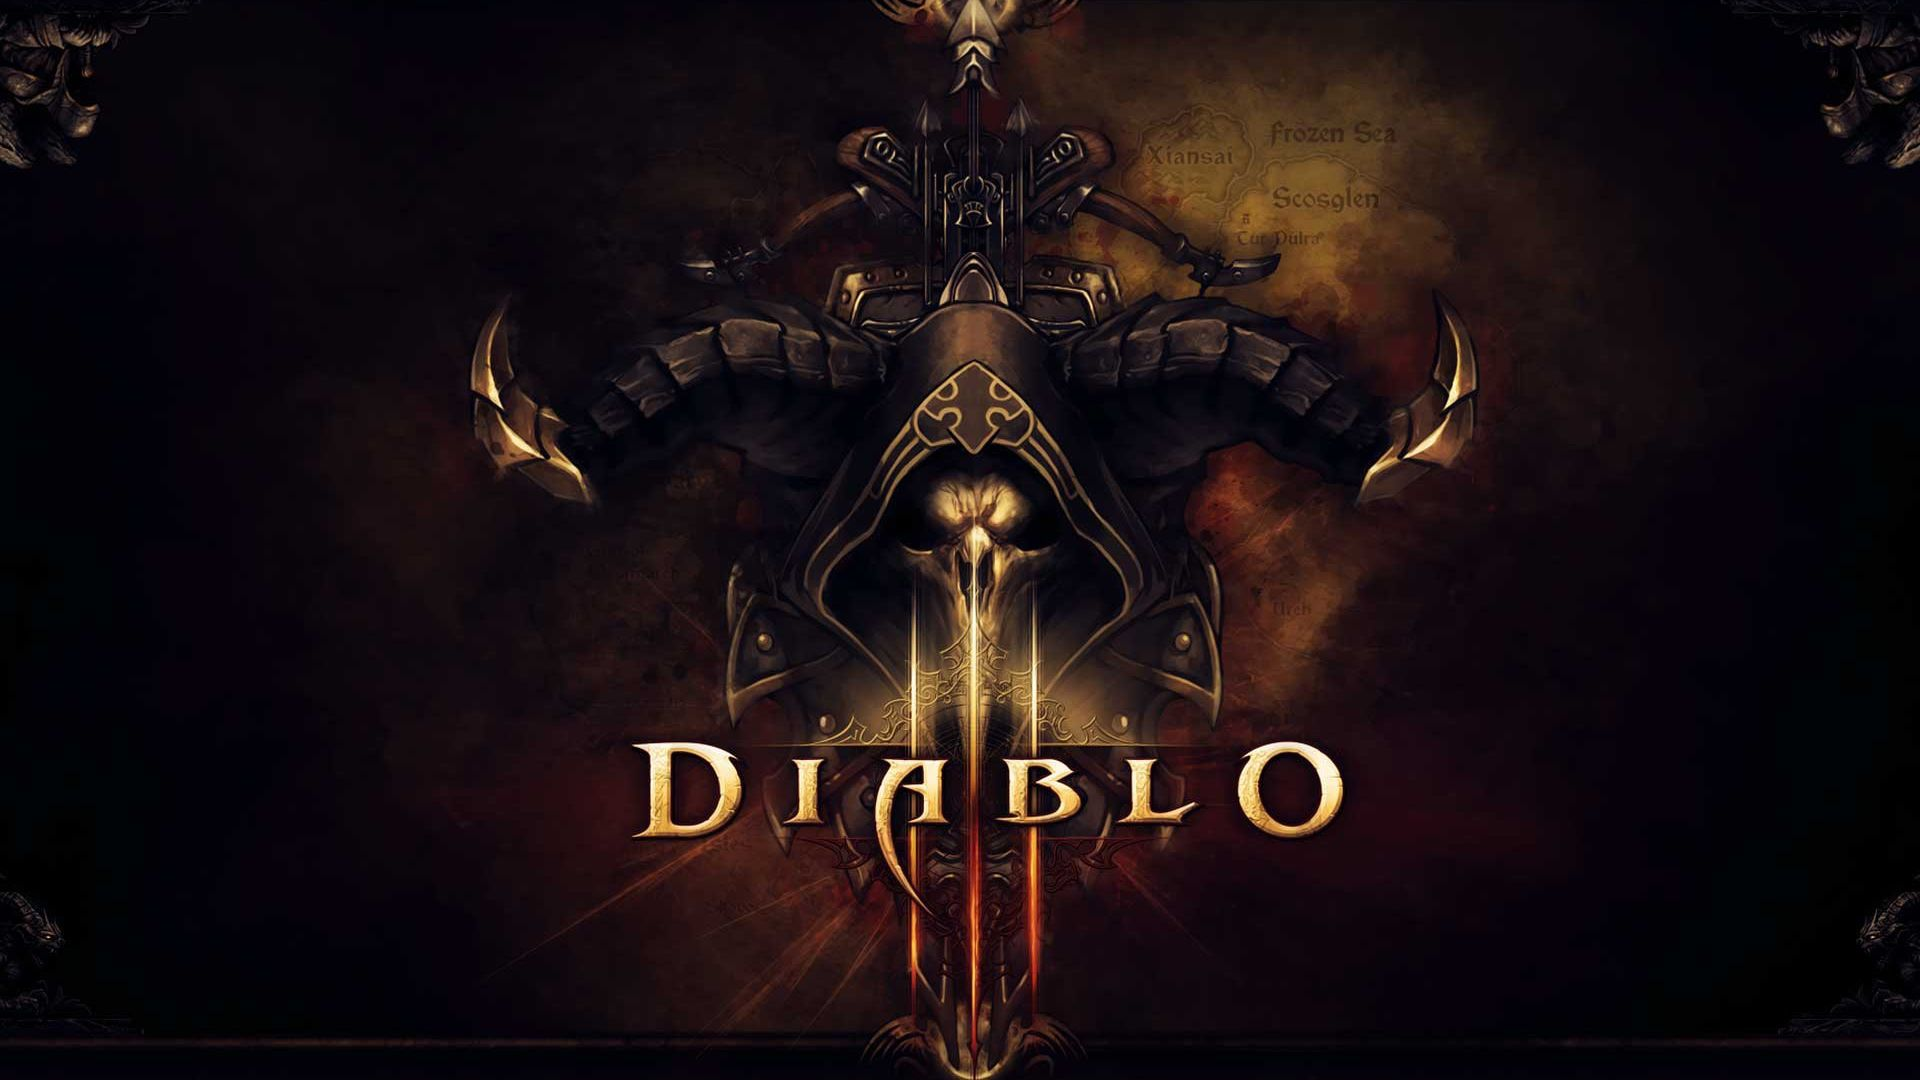 Diablo Wallpaper